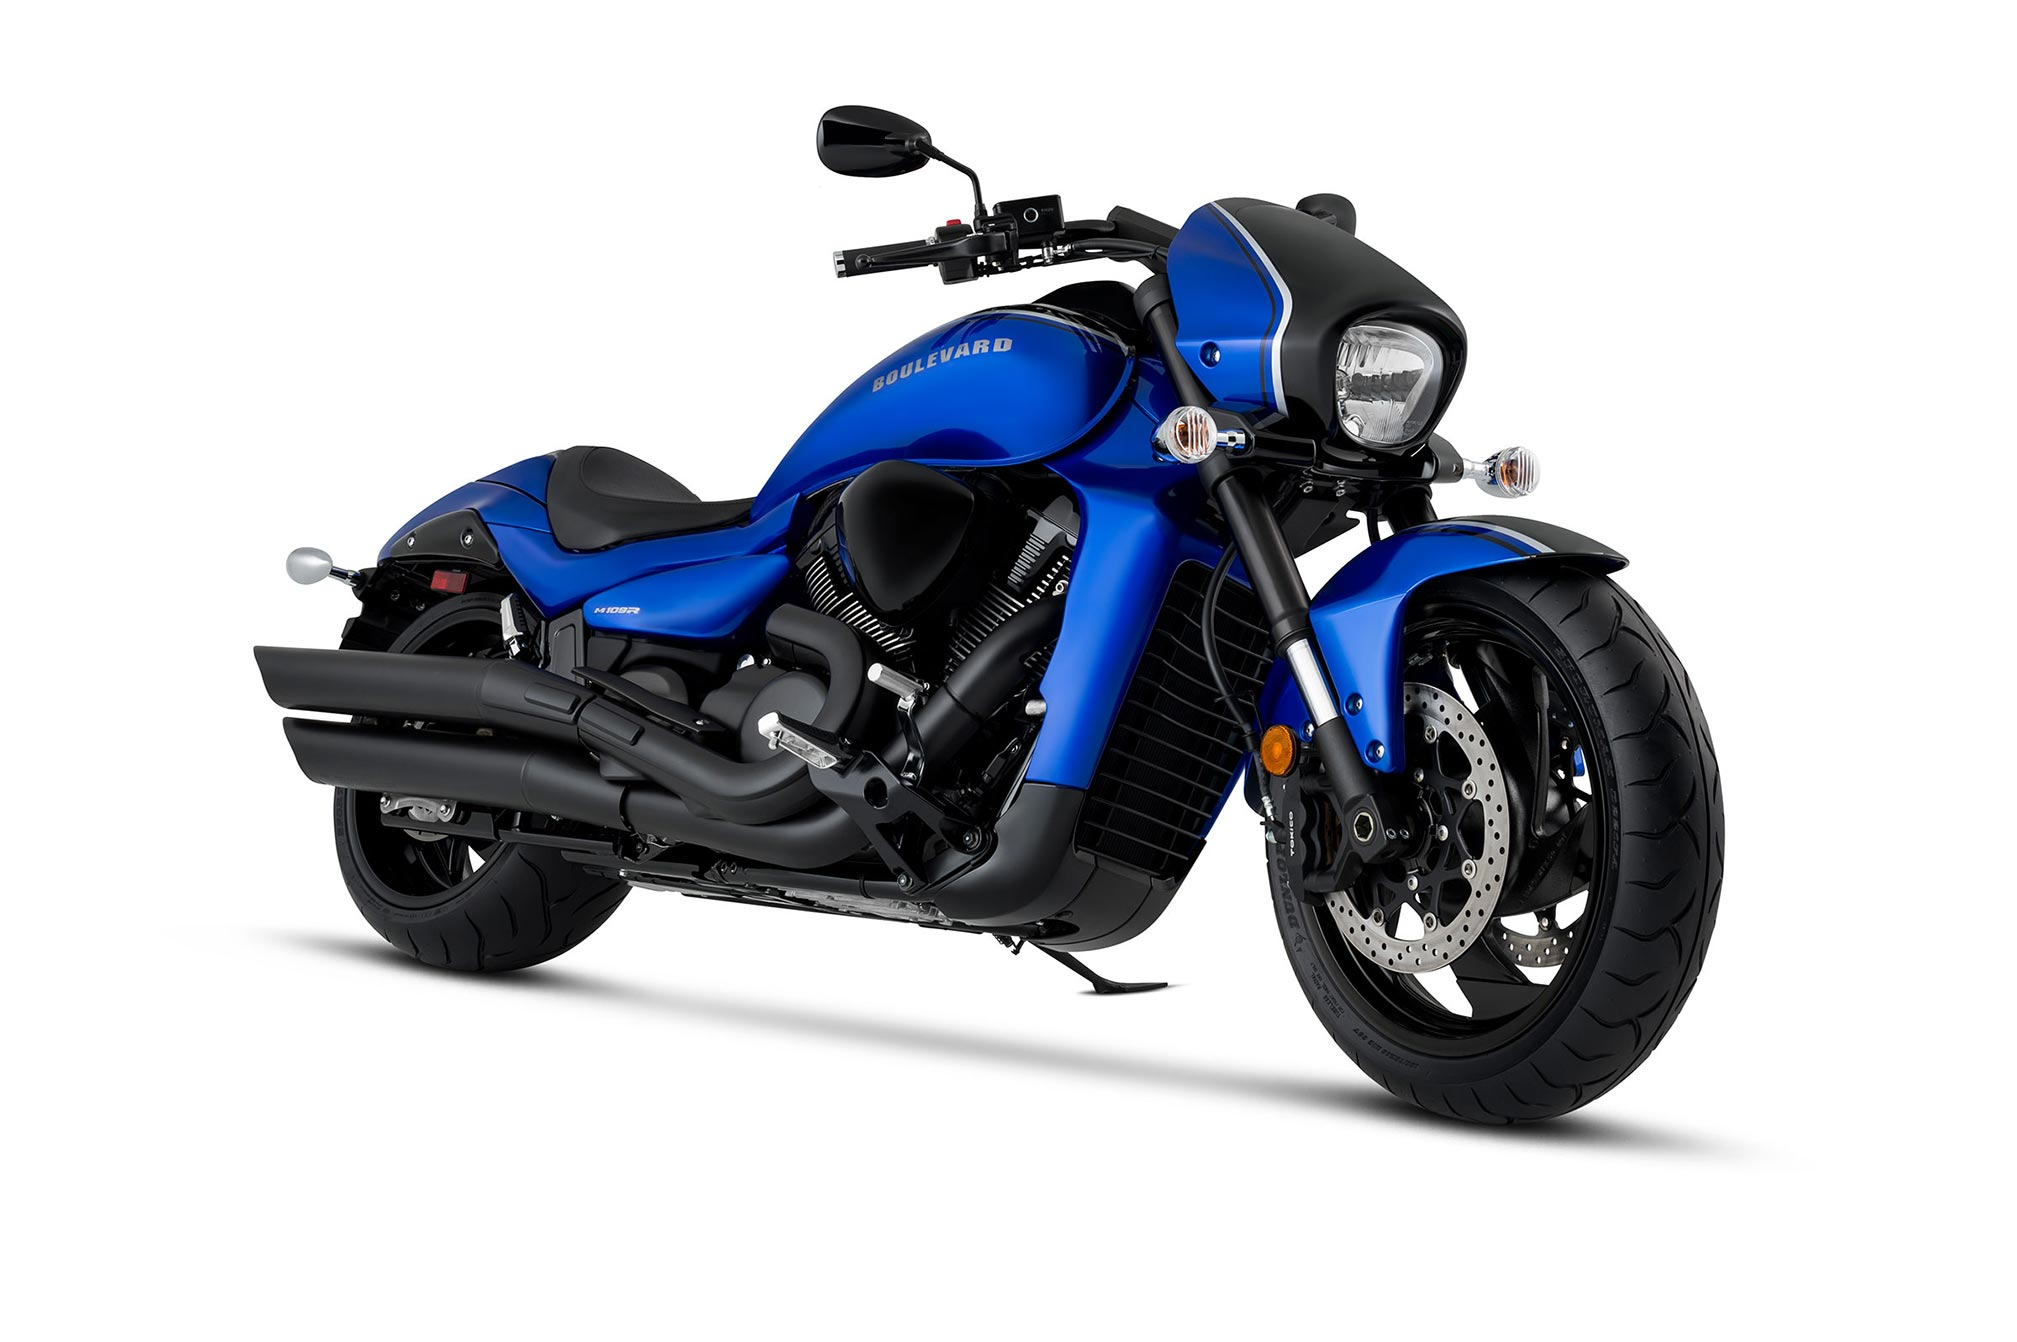 Specs For Suzuki  Intruder Motorcycle